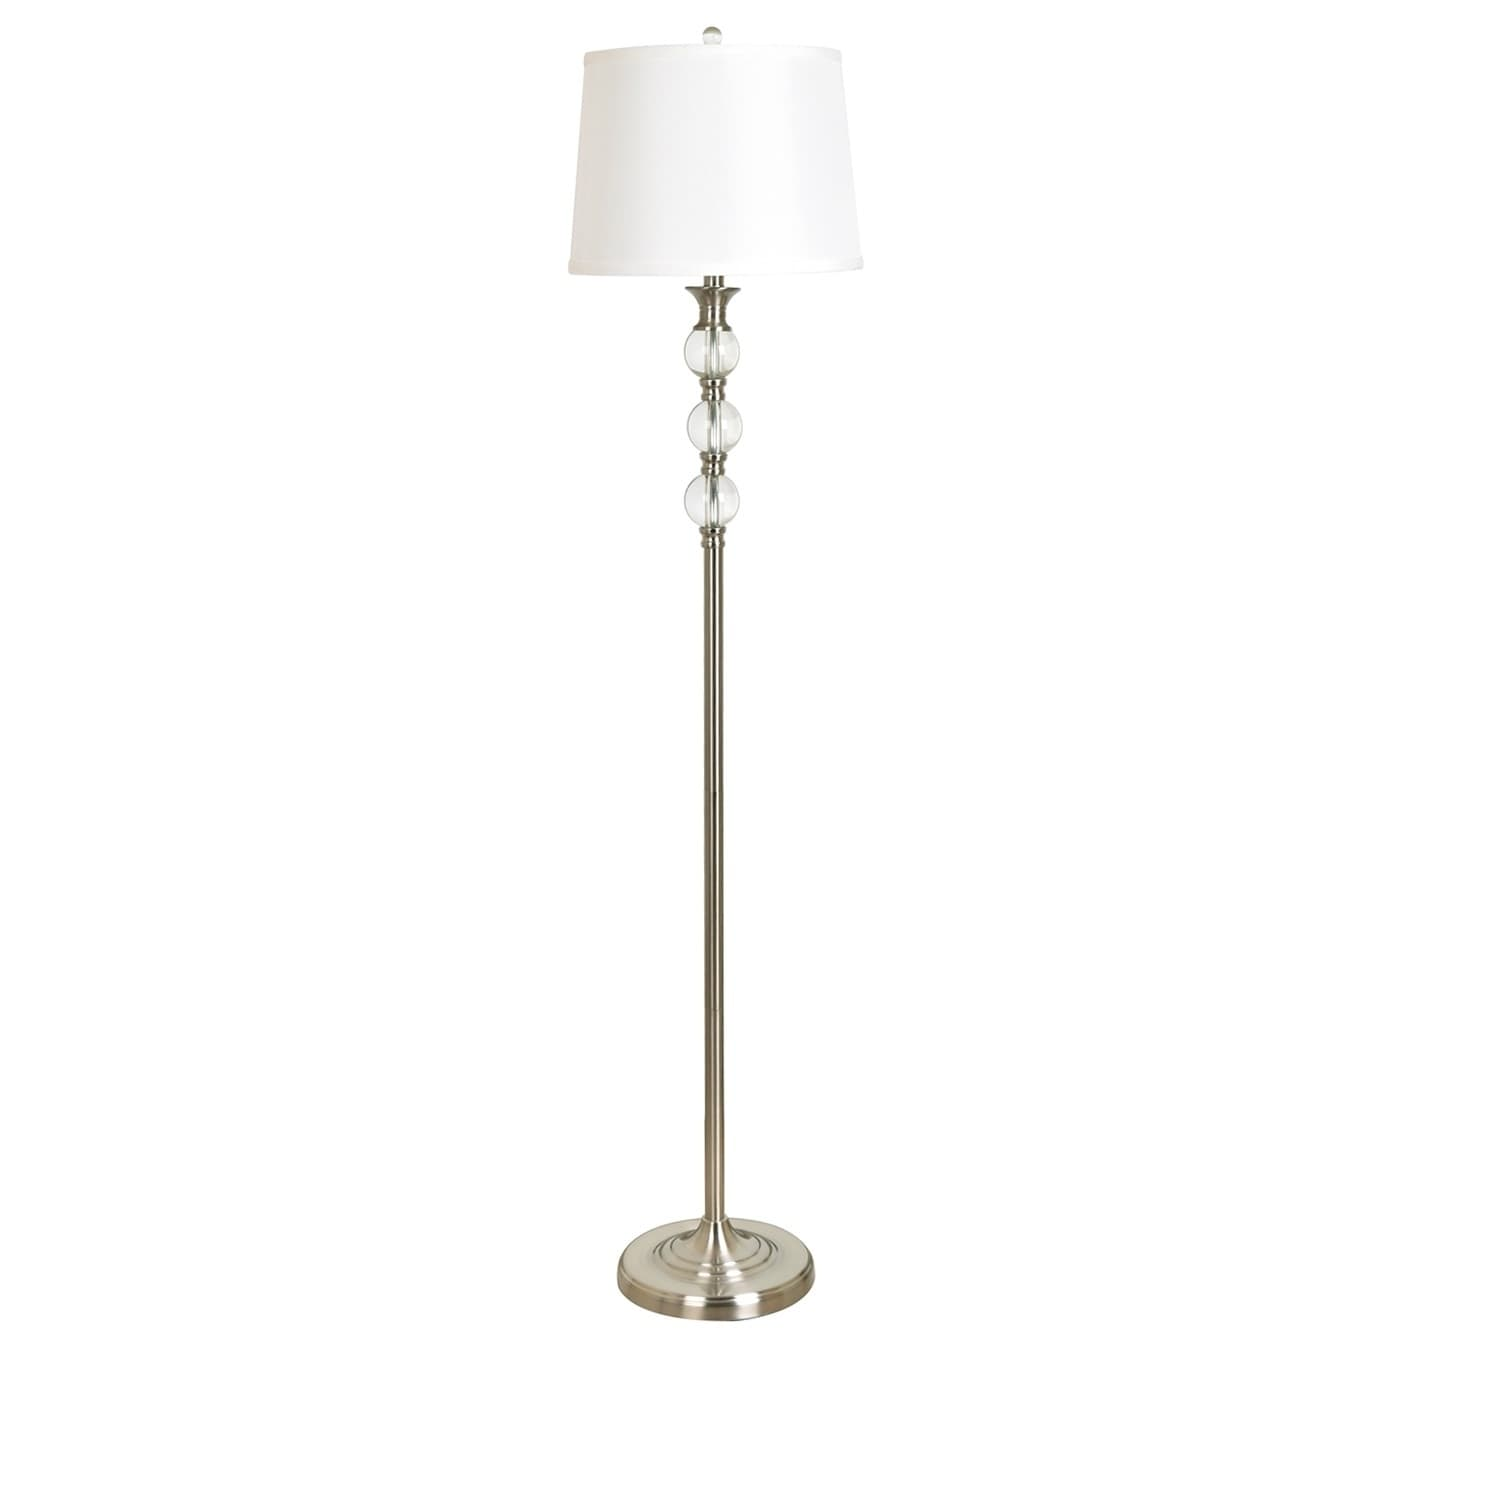 Fancy Standing Lamps Buy Floor Lamps Online At Overstock Our Best Lighting Deals